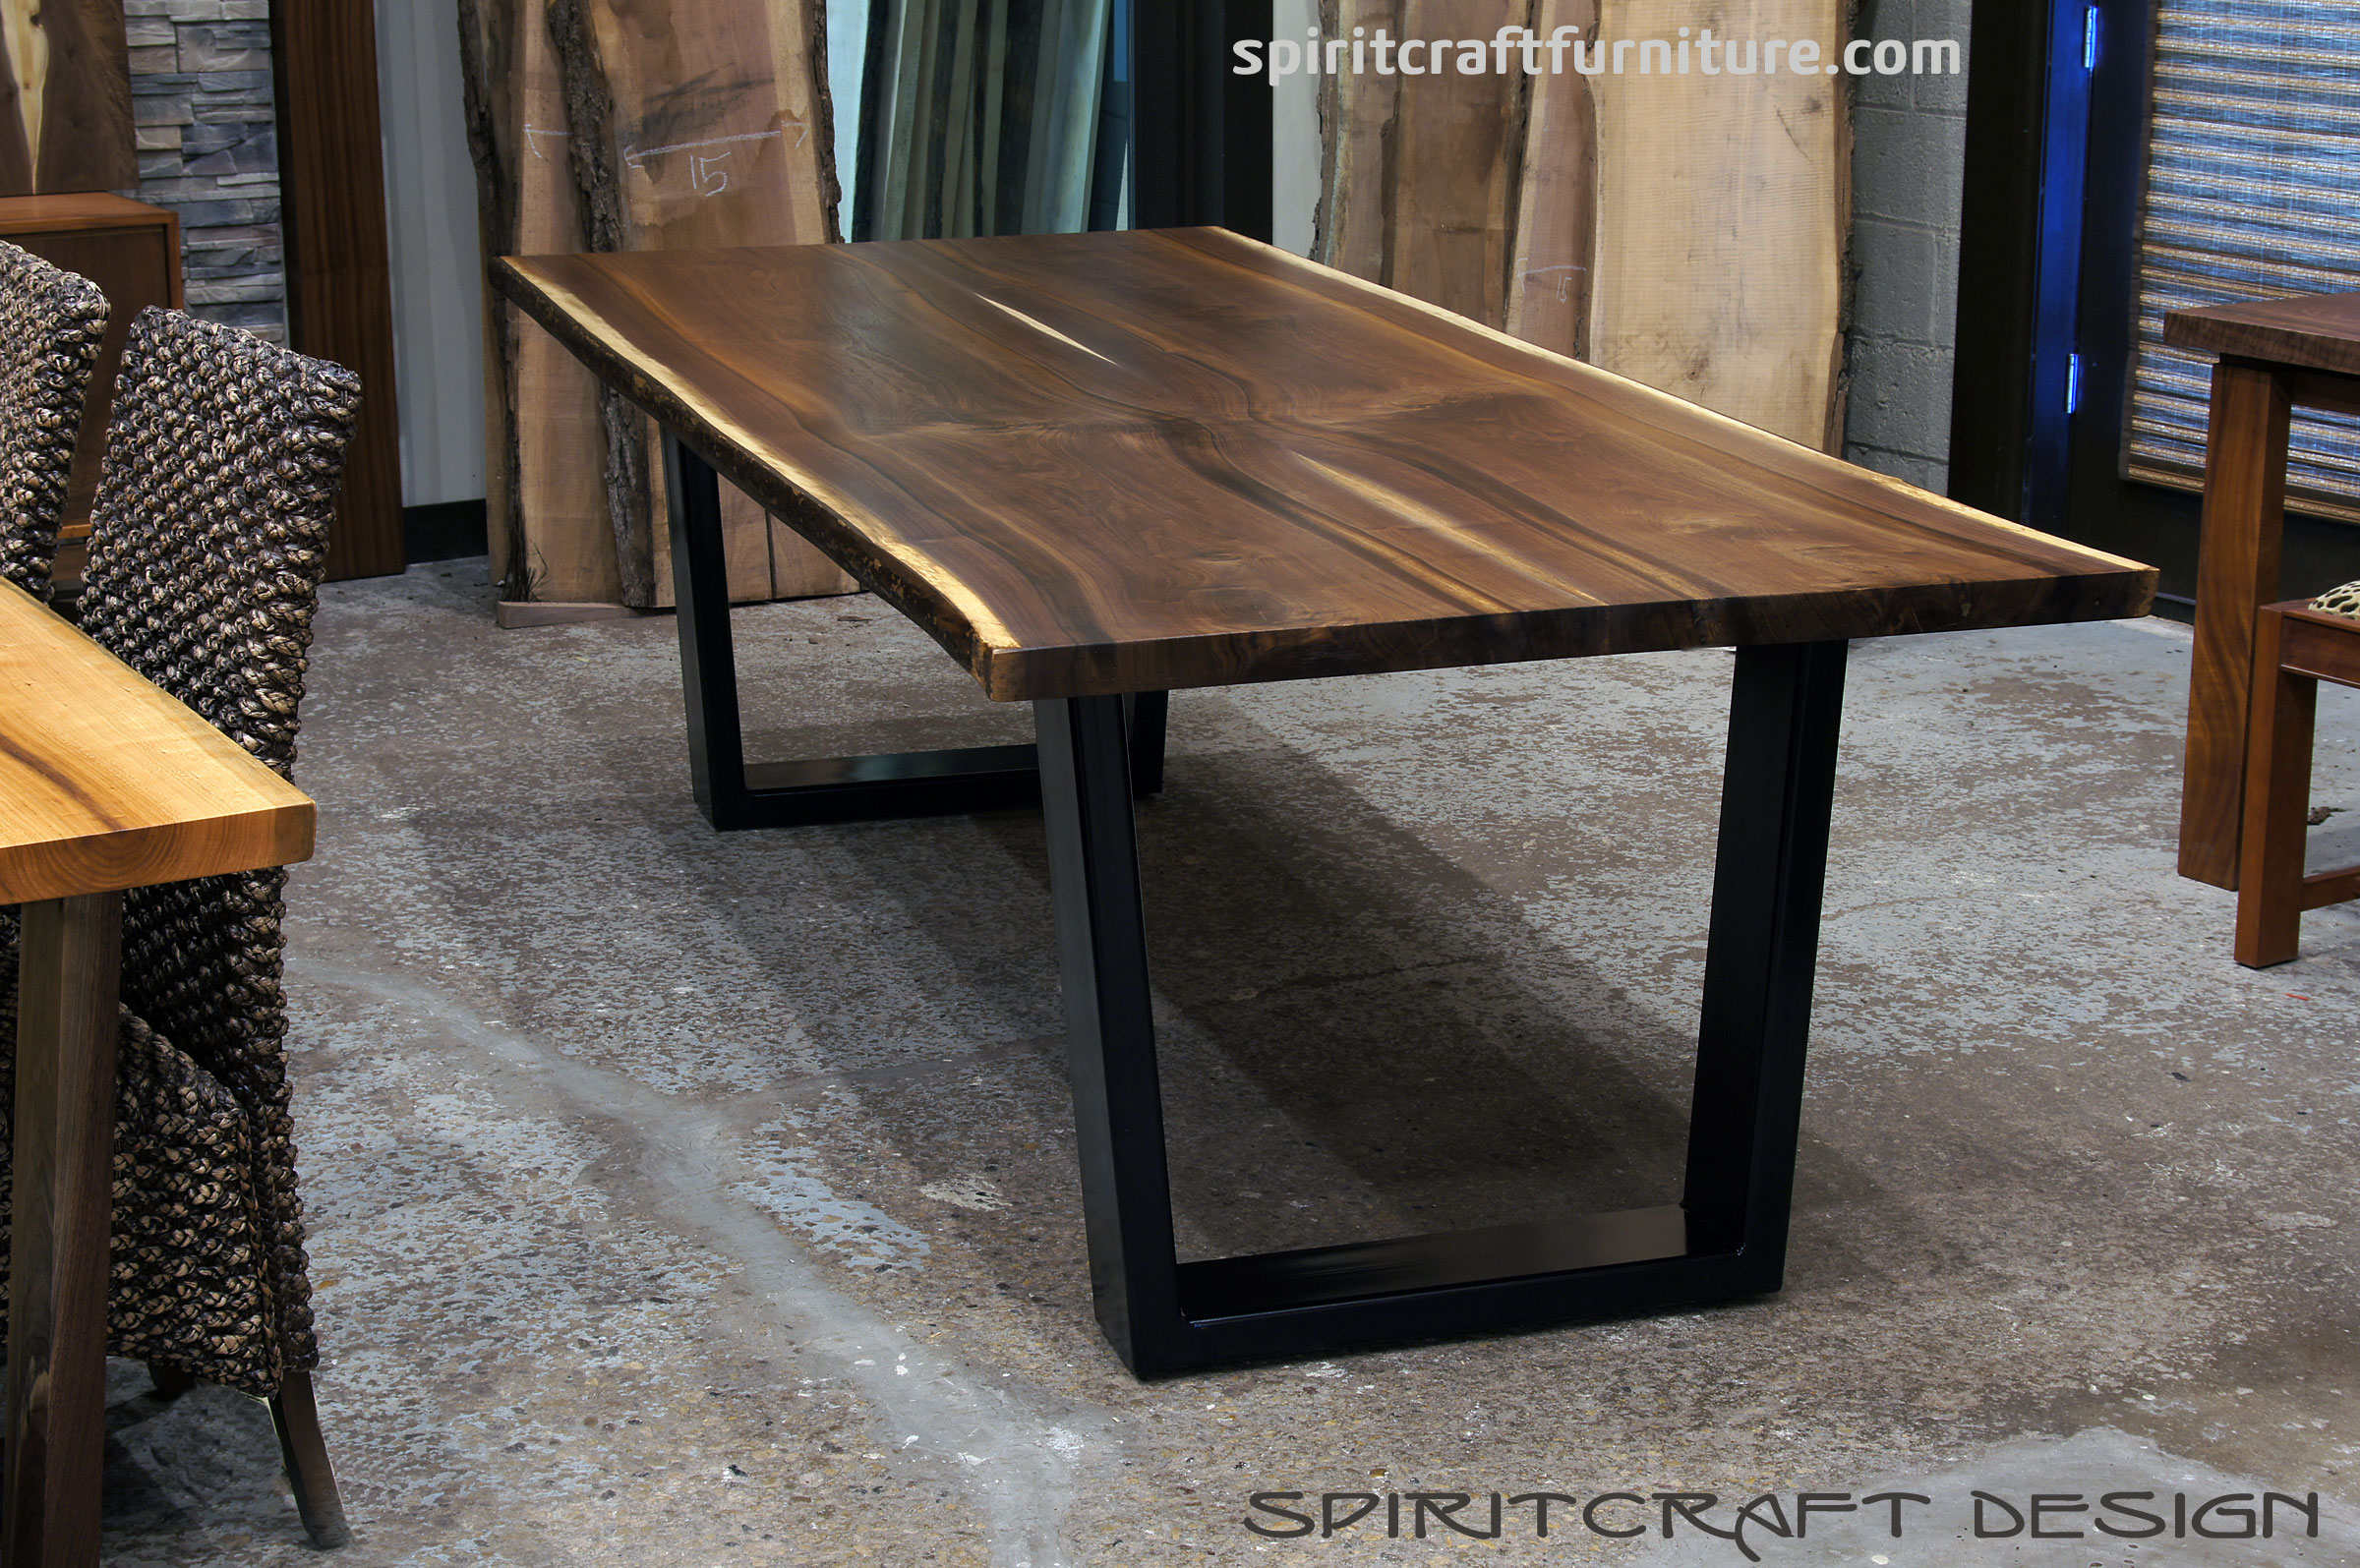 Walnut live edge dining table - Black Walnut Live Edge Slab Dining Table For Chicago Area Client From Great Spirit Furniture Company